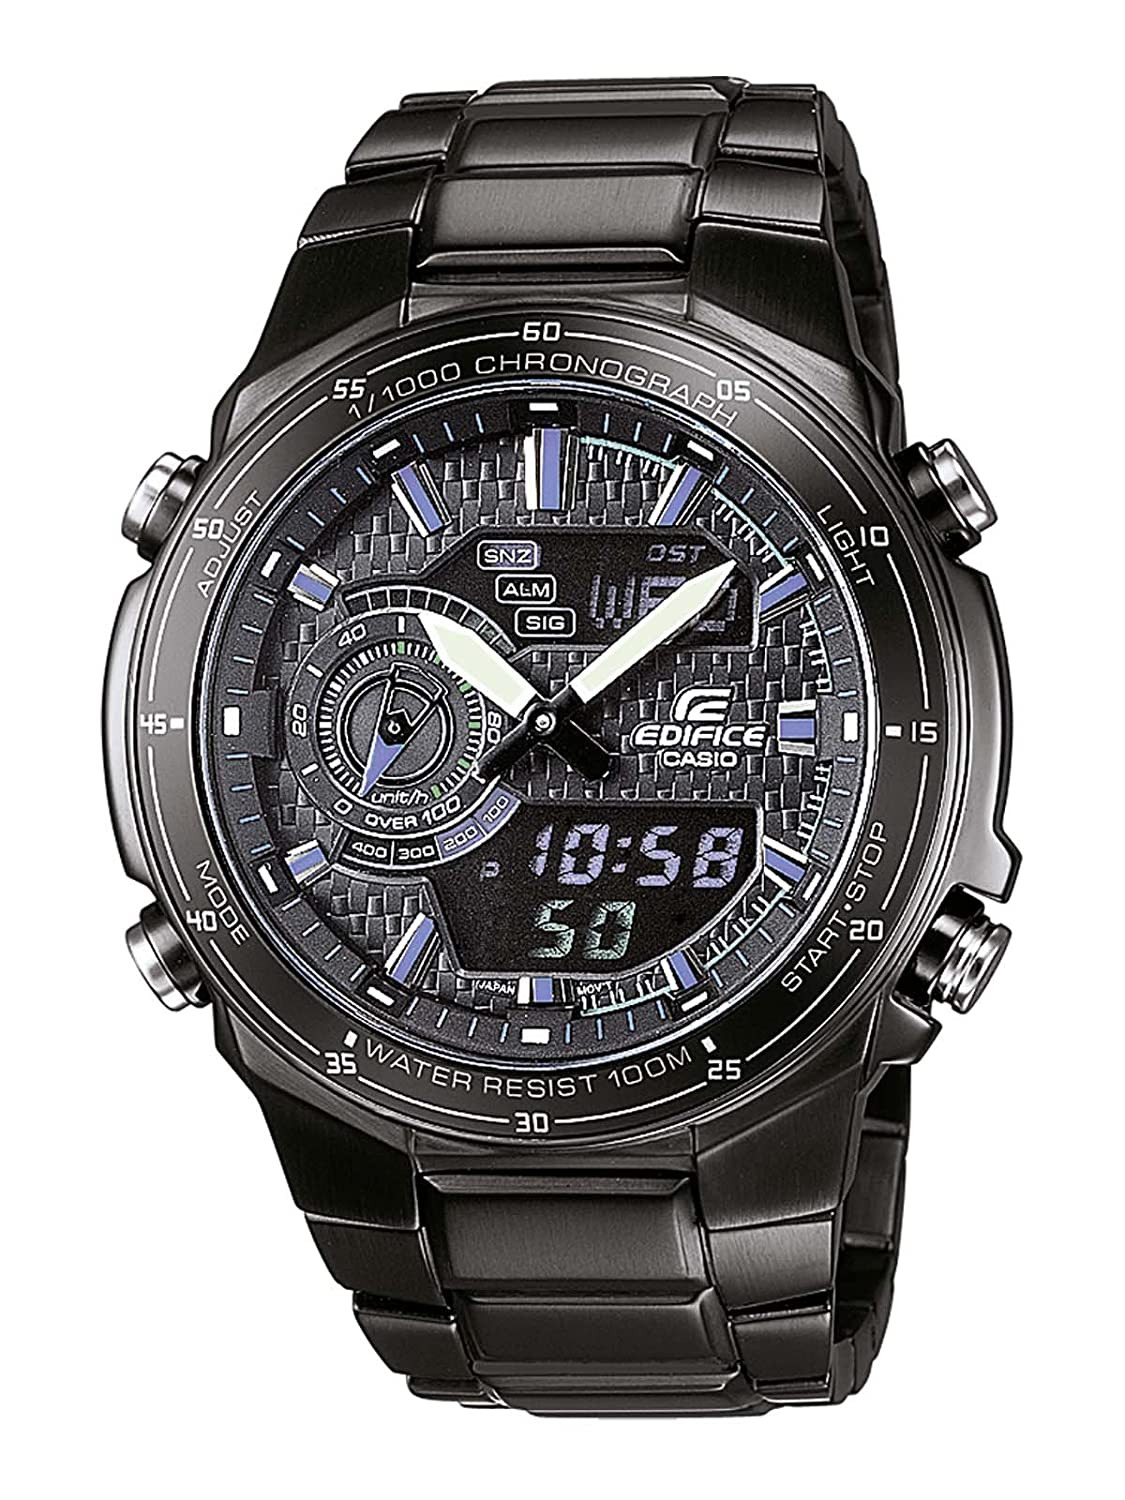 Casio Edifice Herren-Armbanduhr Analog - Digital Quarz EFA-131BK-1AVEF